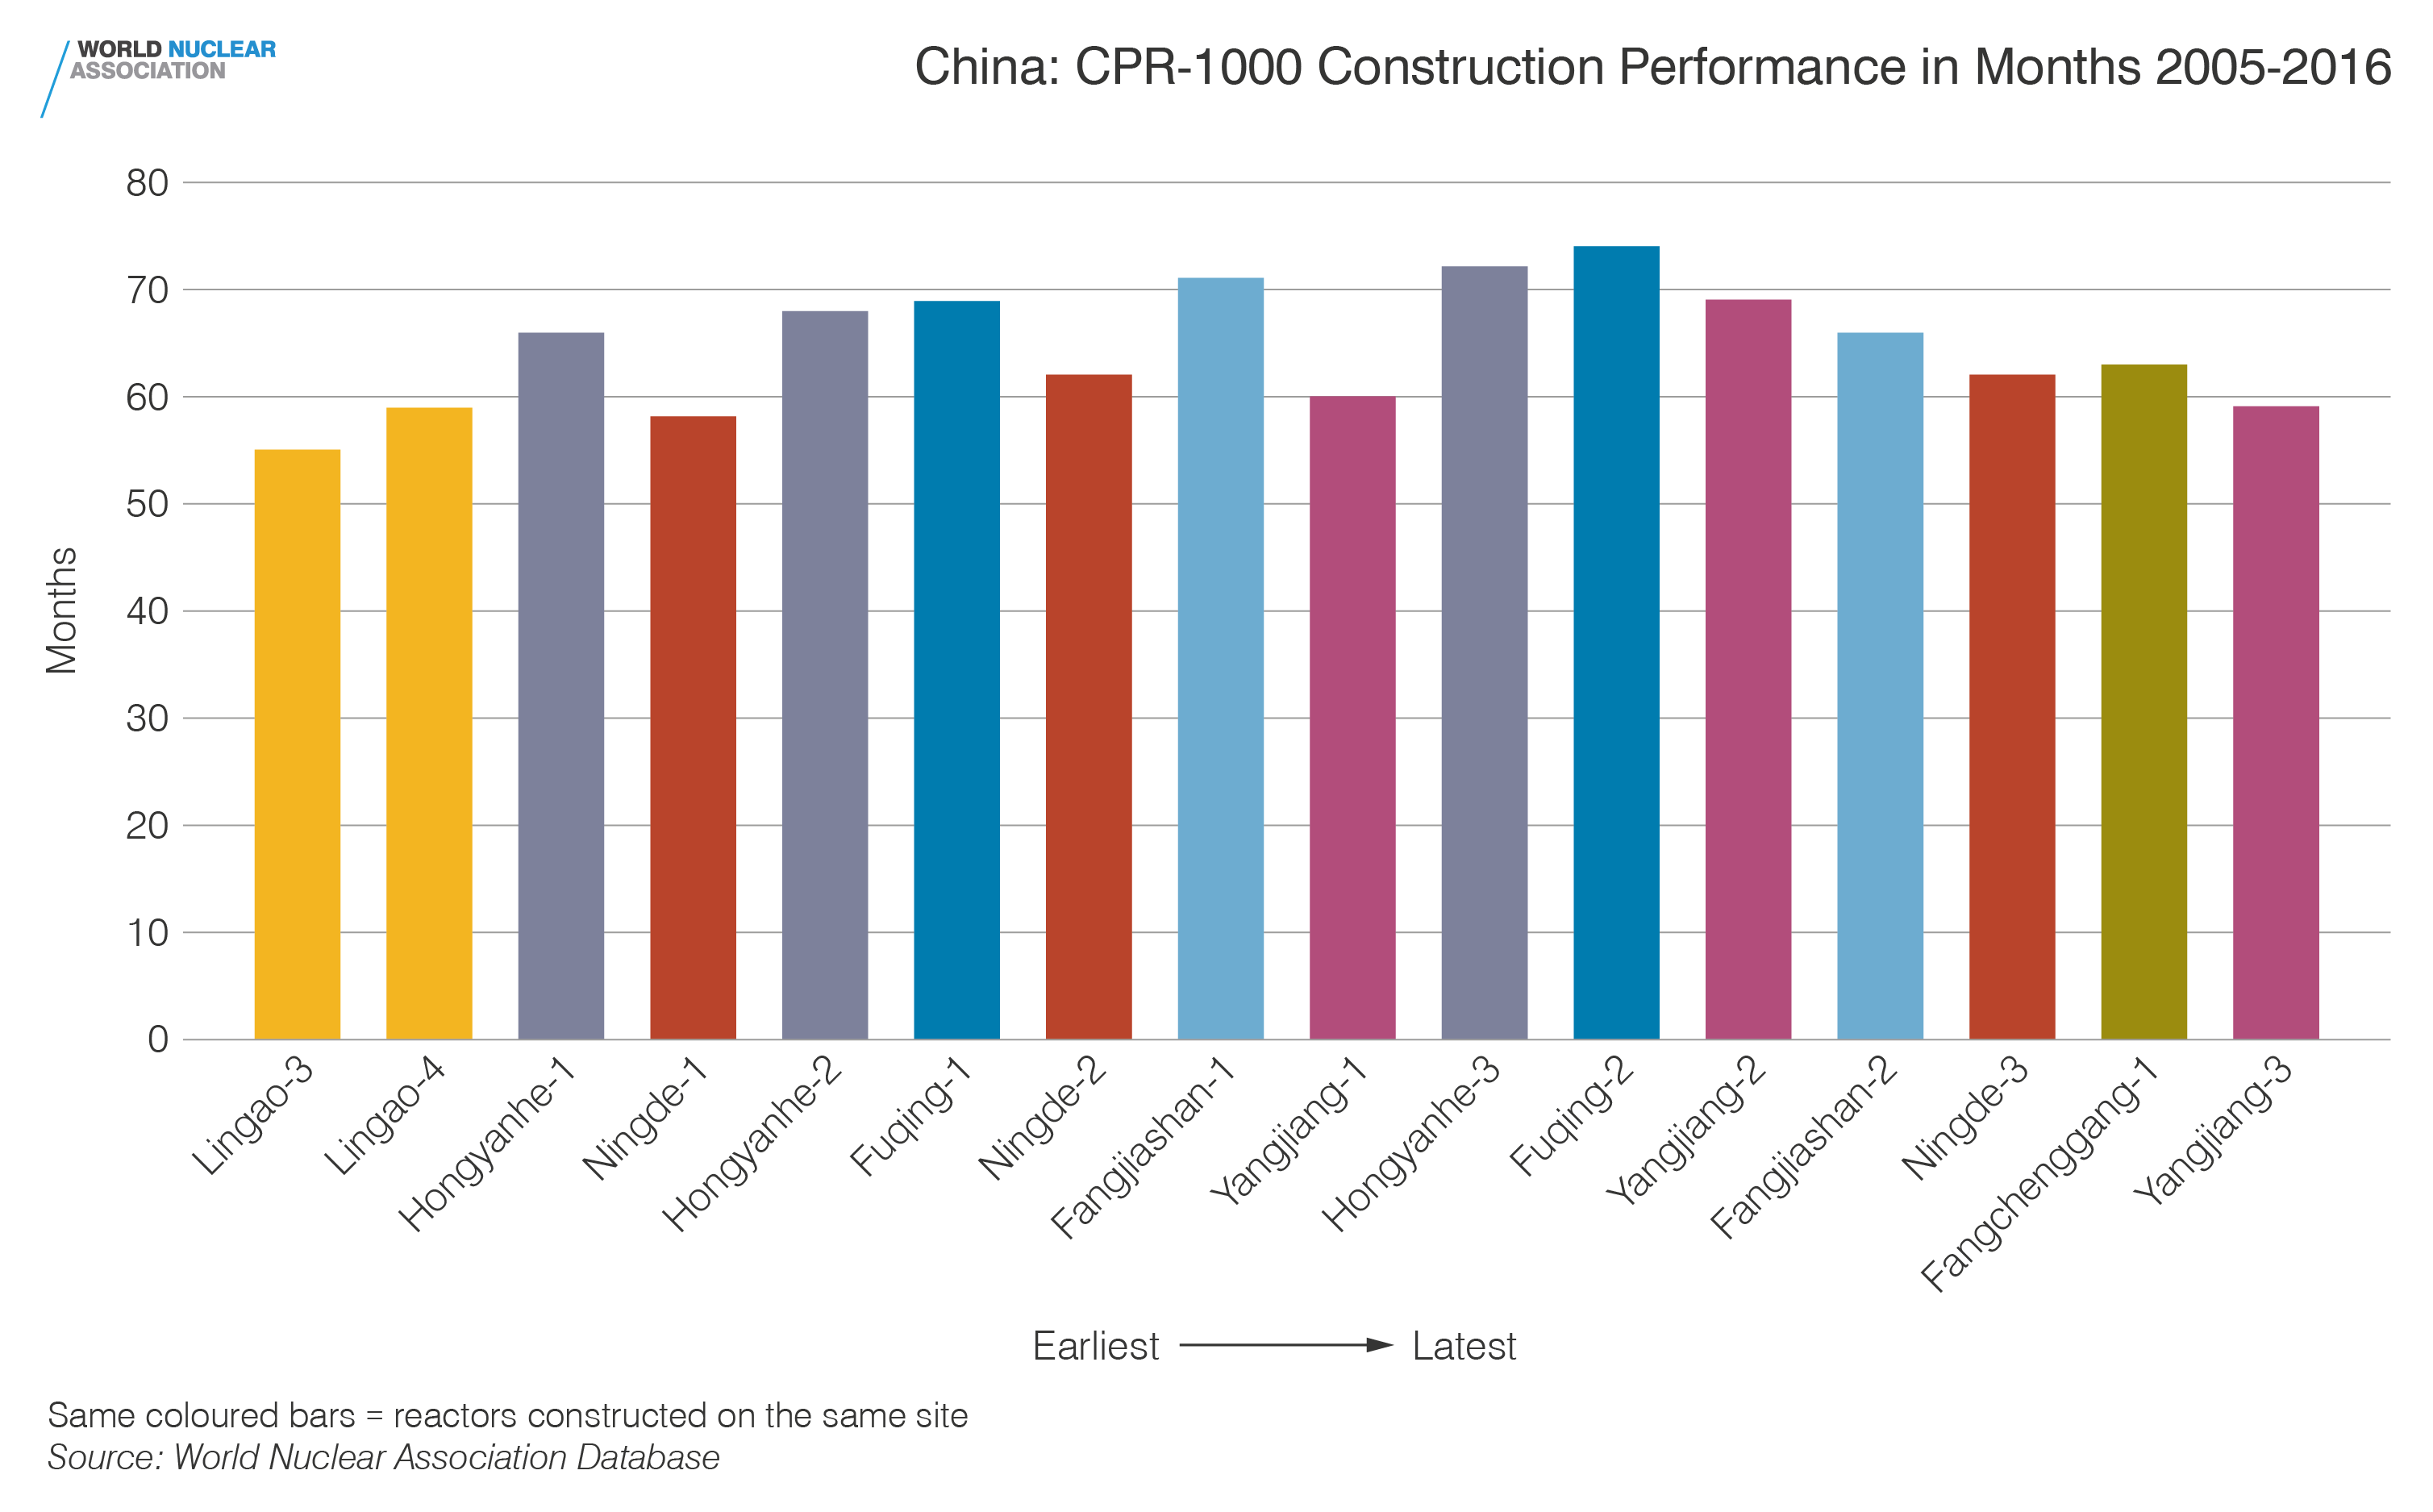 China: CPR-1000 construction performance in months 2005-2016